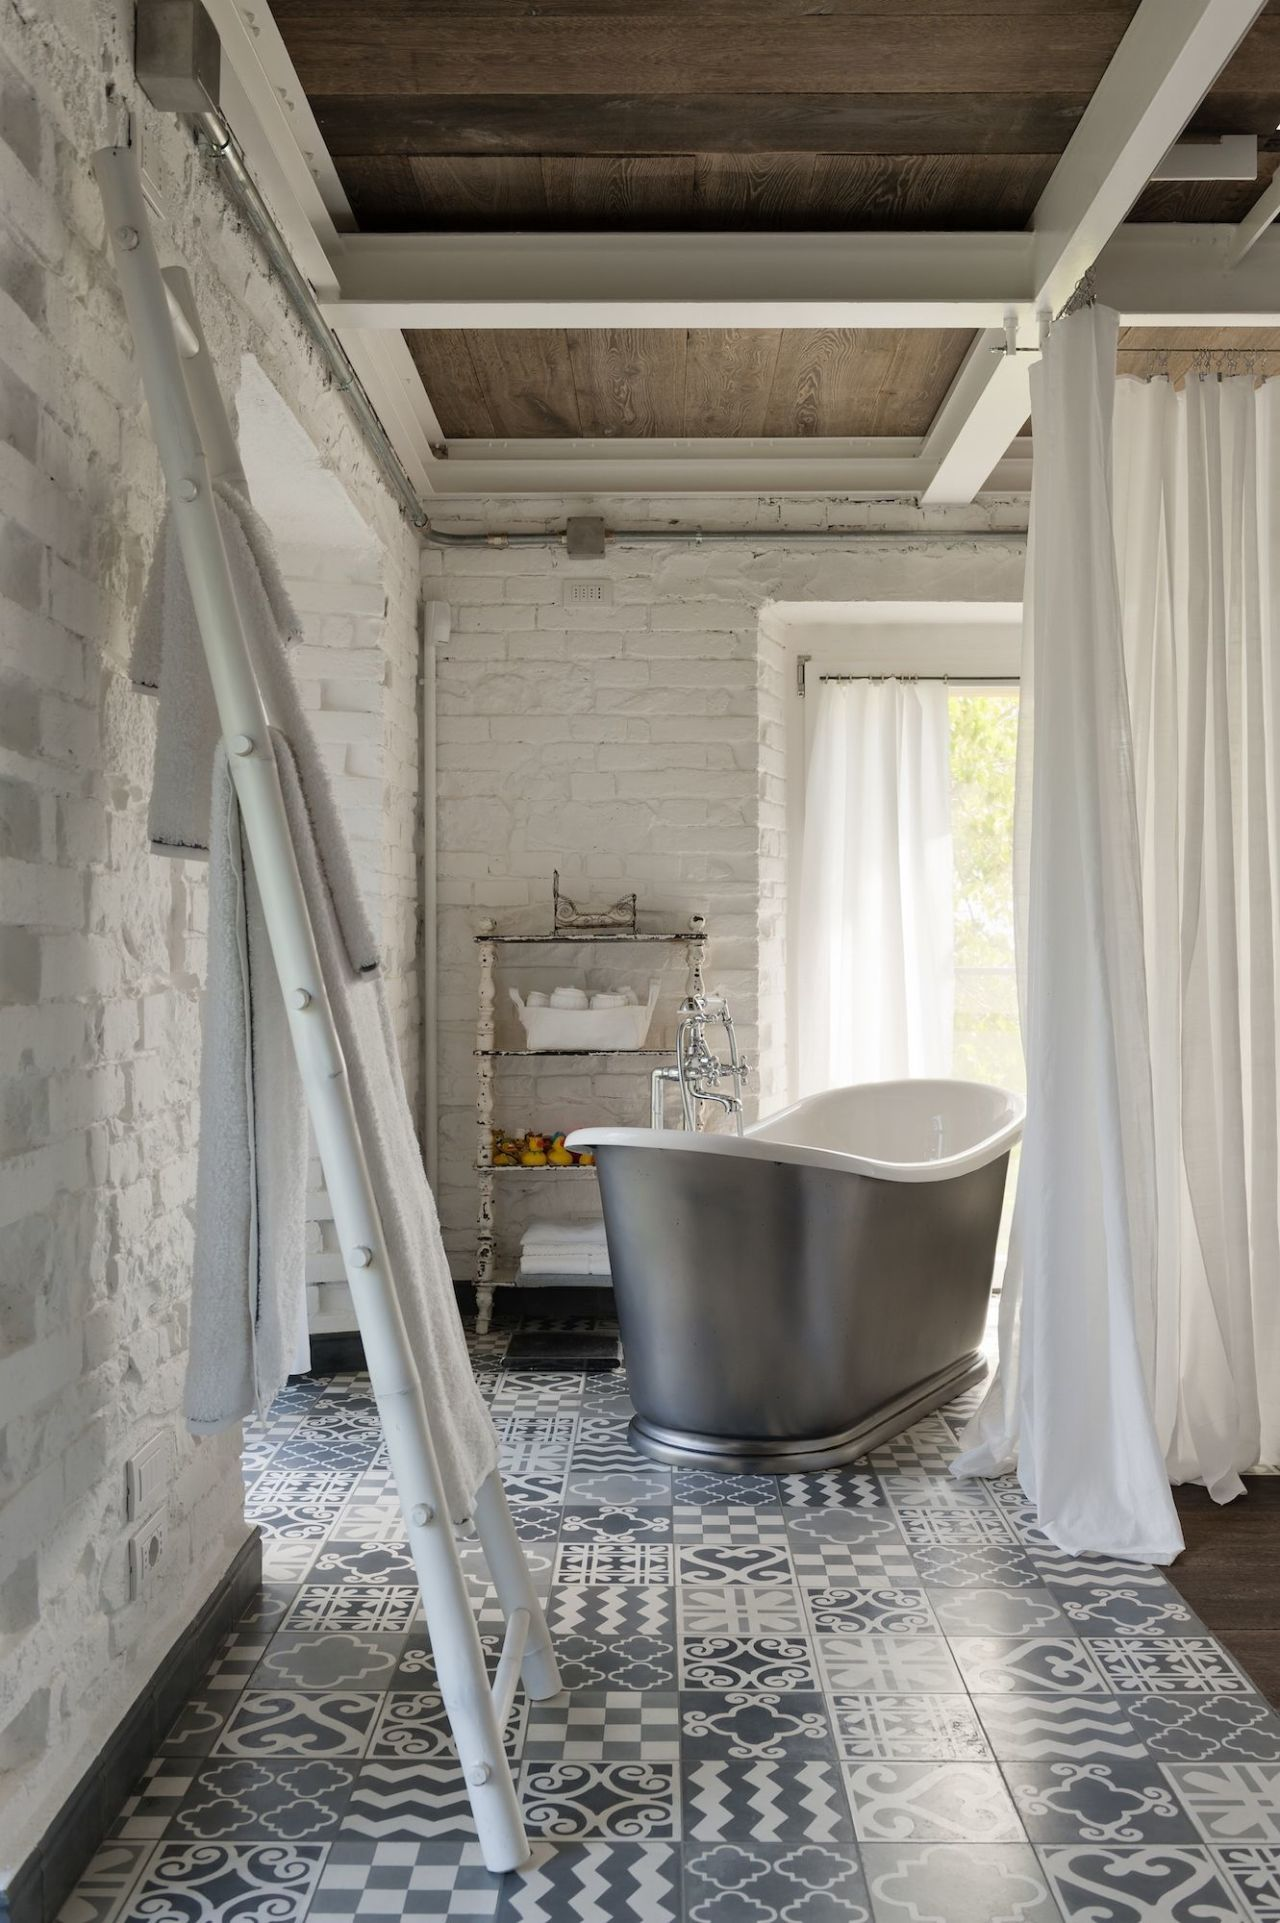 patterned tiles painted brick walls and a